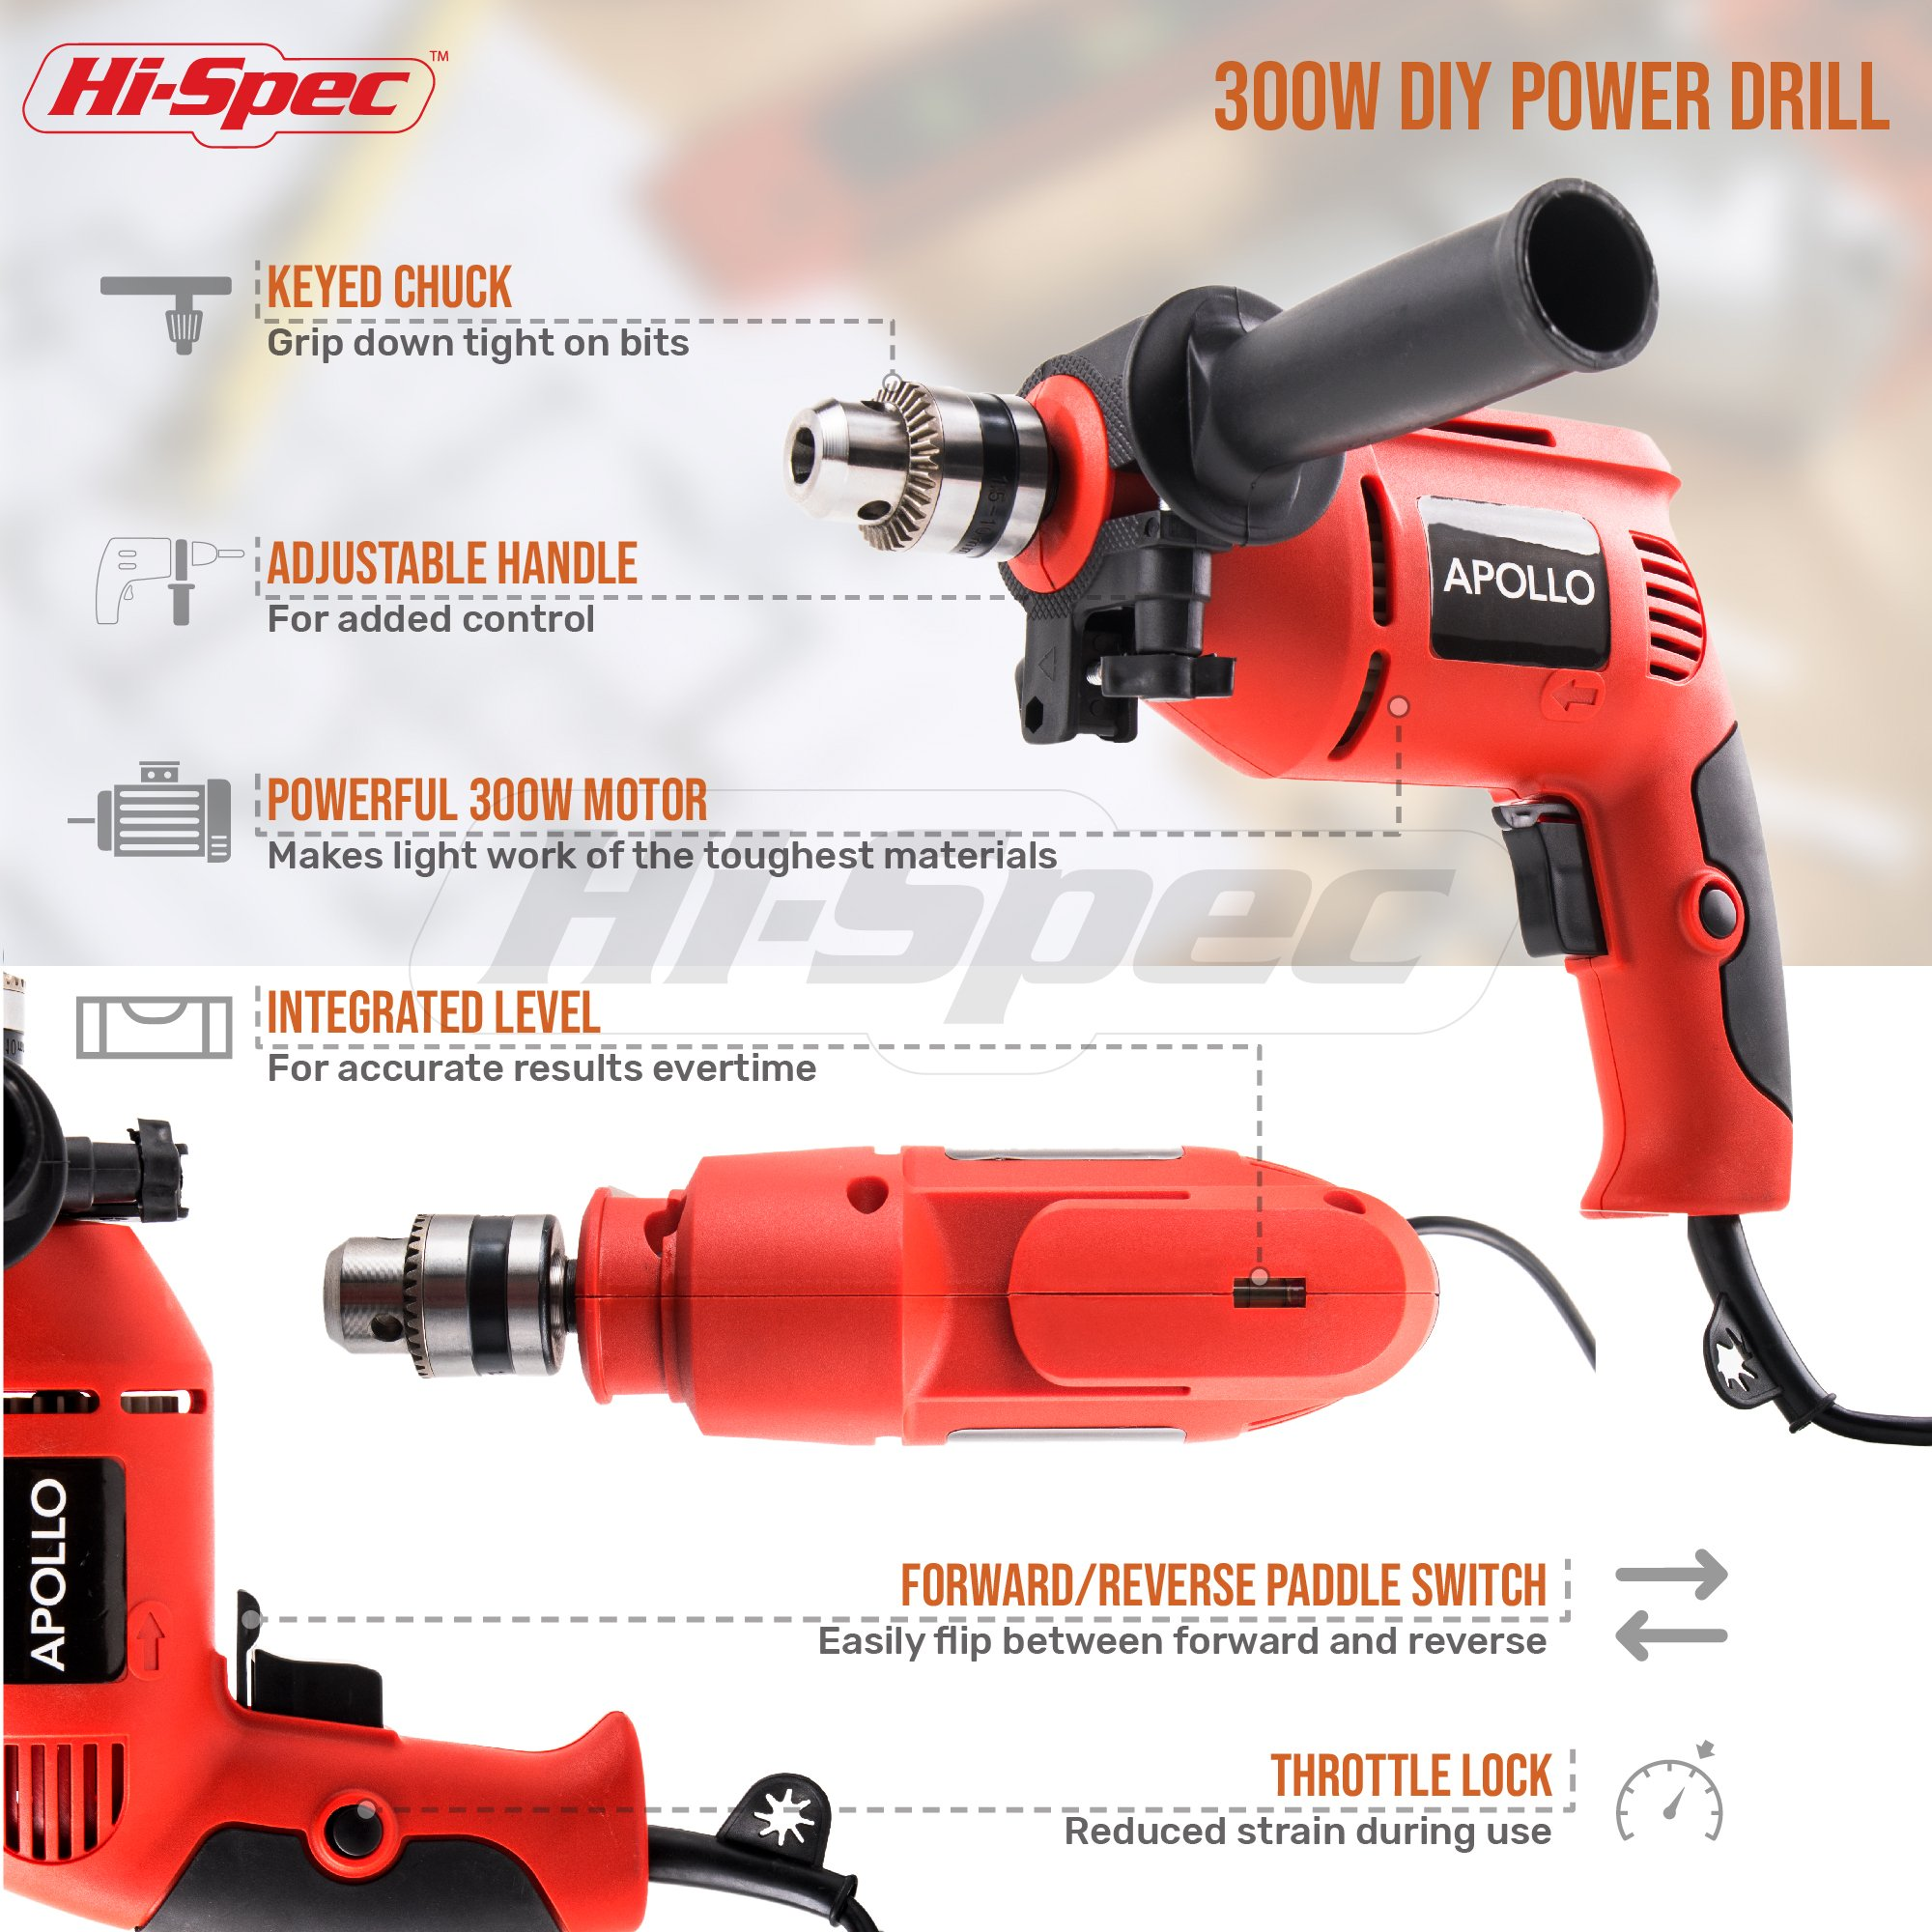 Hi-Spec Complete 130pc 110V 300W Hammer Power Drill & Hand Tool Set Combo Kit with Hacksaw, Pliers, Claw-Hammer, Wrench, Box Cutter, Hex Keys, Screwdrivers, Socket and Driver Bits, Voltage Tester Case by Hi-Spec (Image #3)